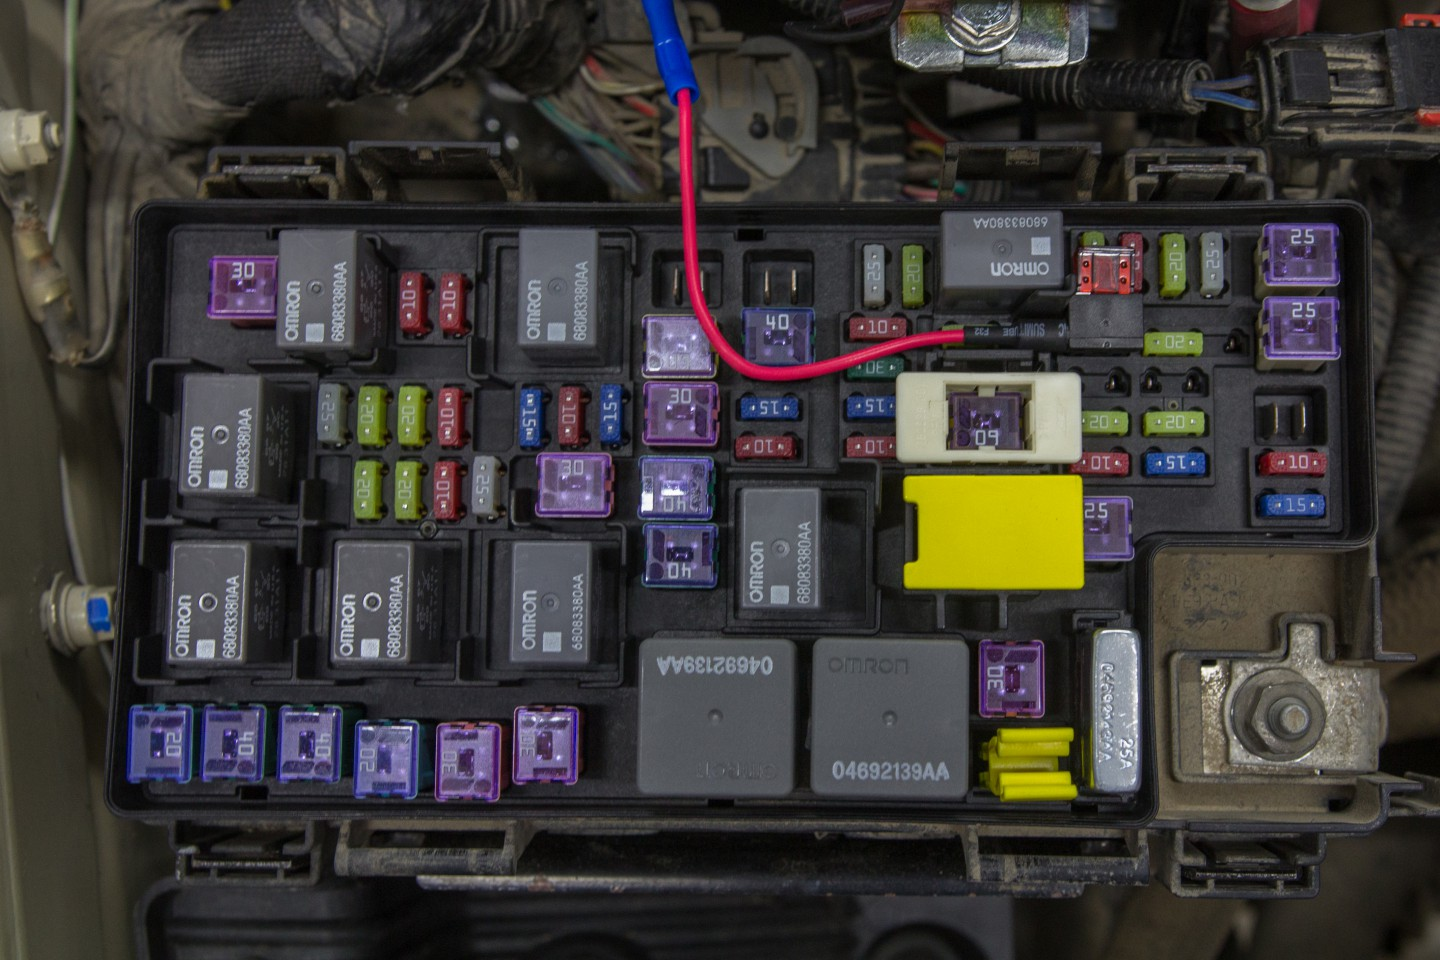 2002 jeep wrangler ignition wiring diagram fsk modulation and demodulation block 2011 diagrams best library fuse box data 2007 jk